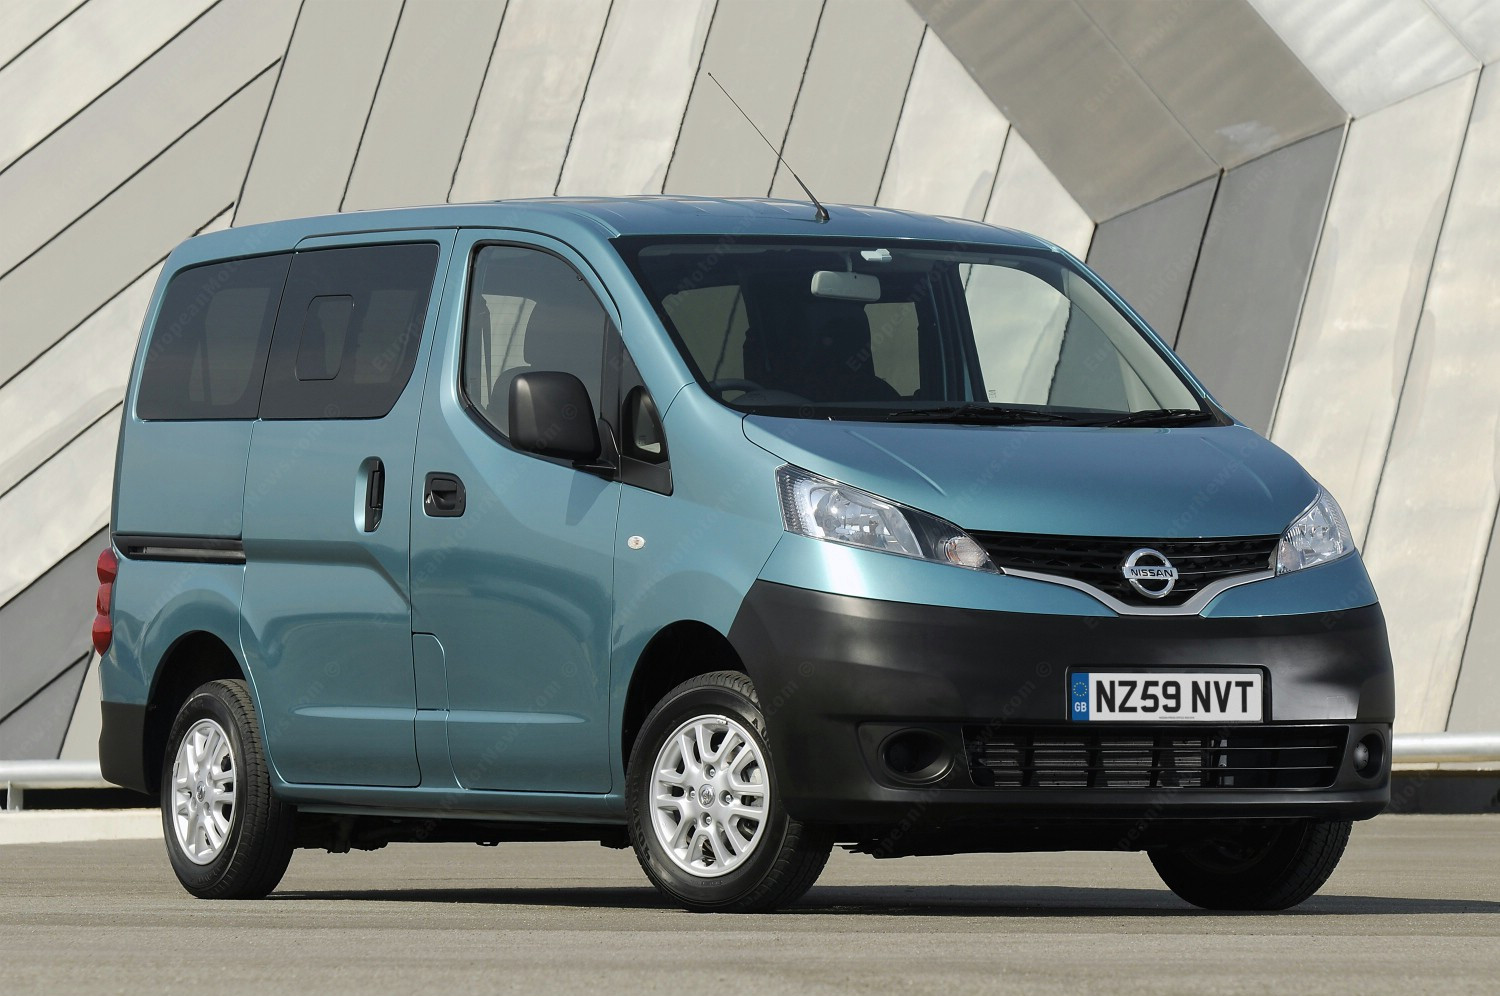 nissan to provide 10 nv200 combis to areas damaged by japan quake autoevolution. Black Bedroom Furniture Sets. Home Design Ideas